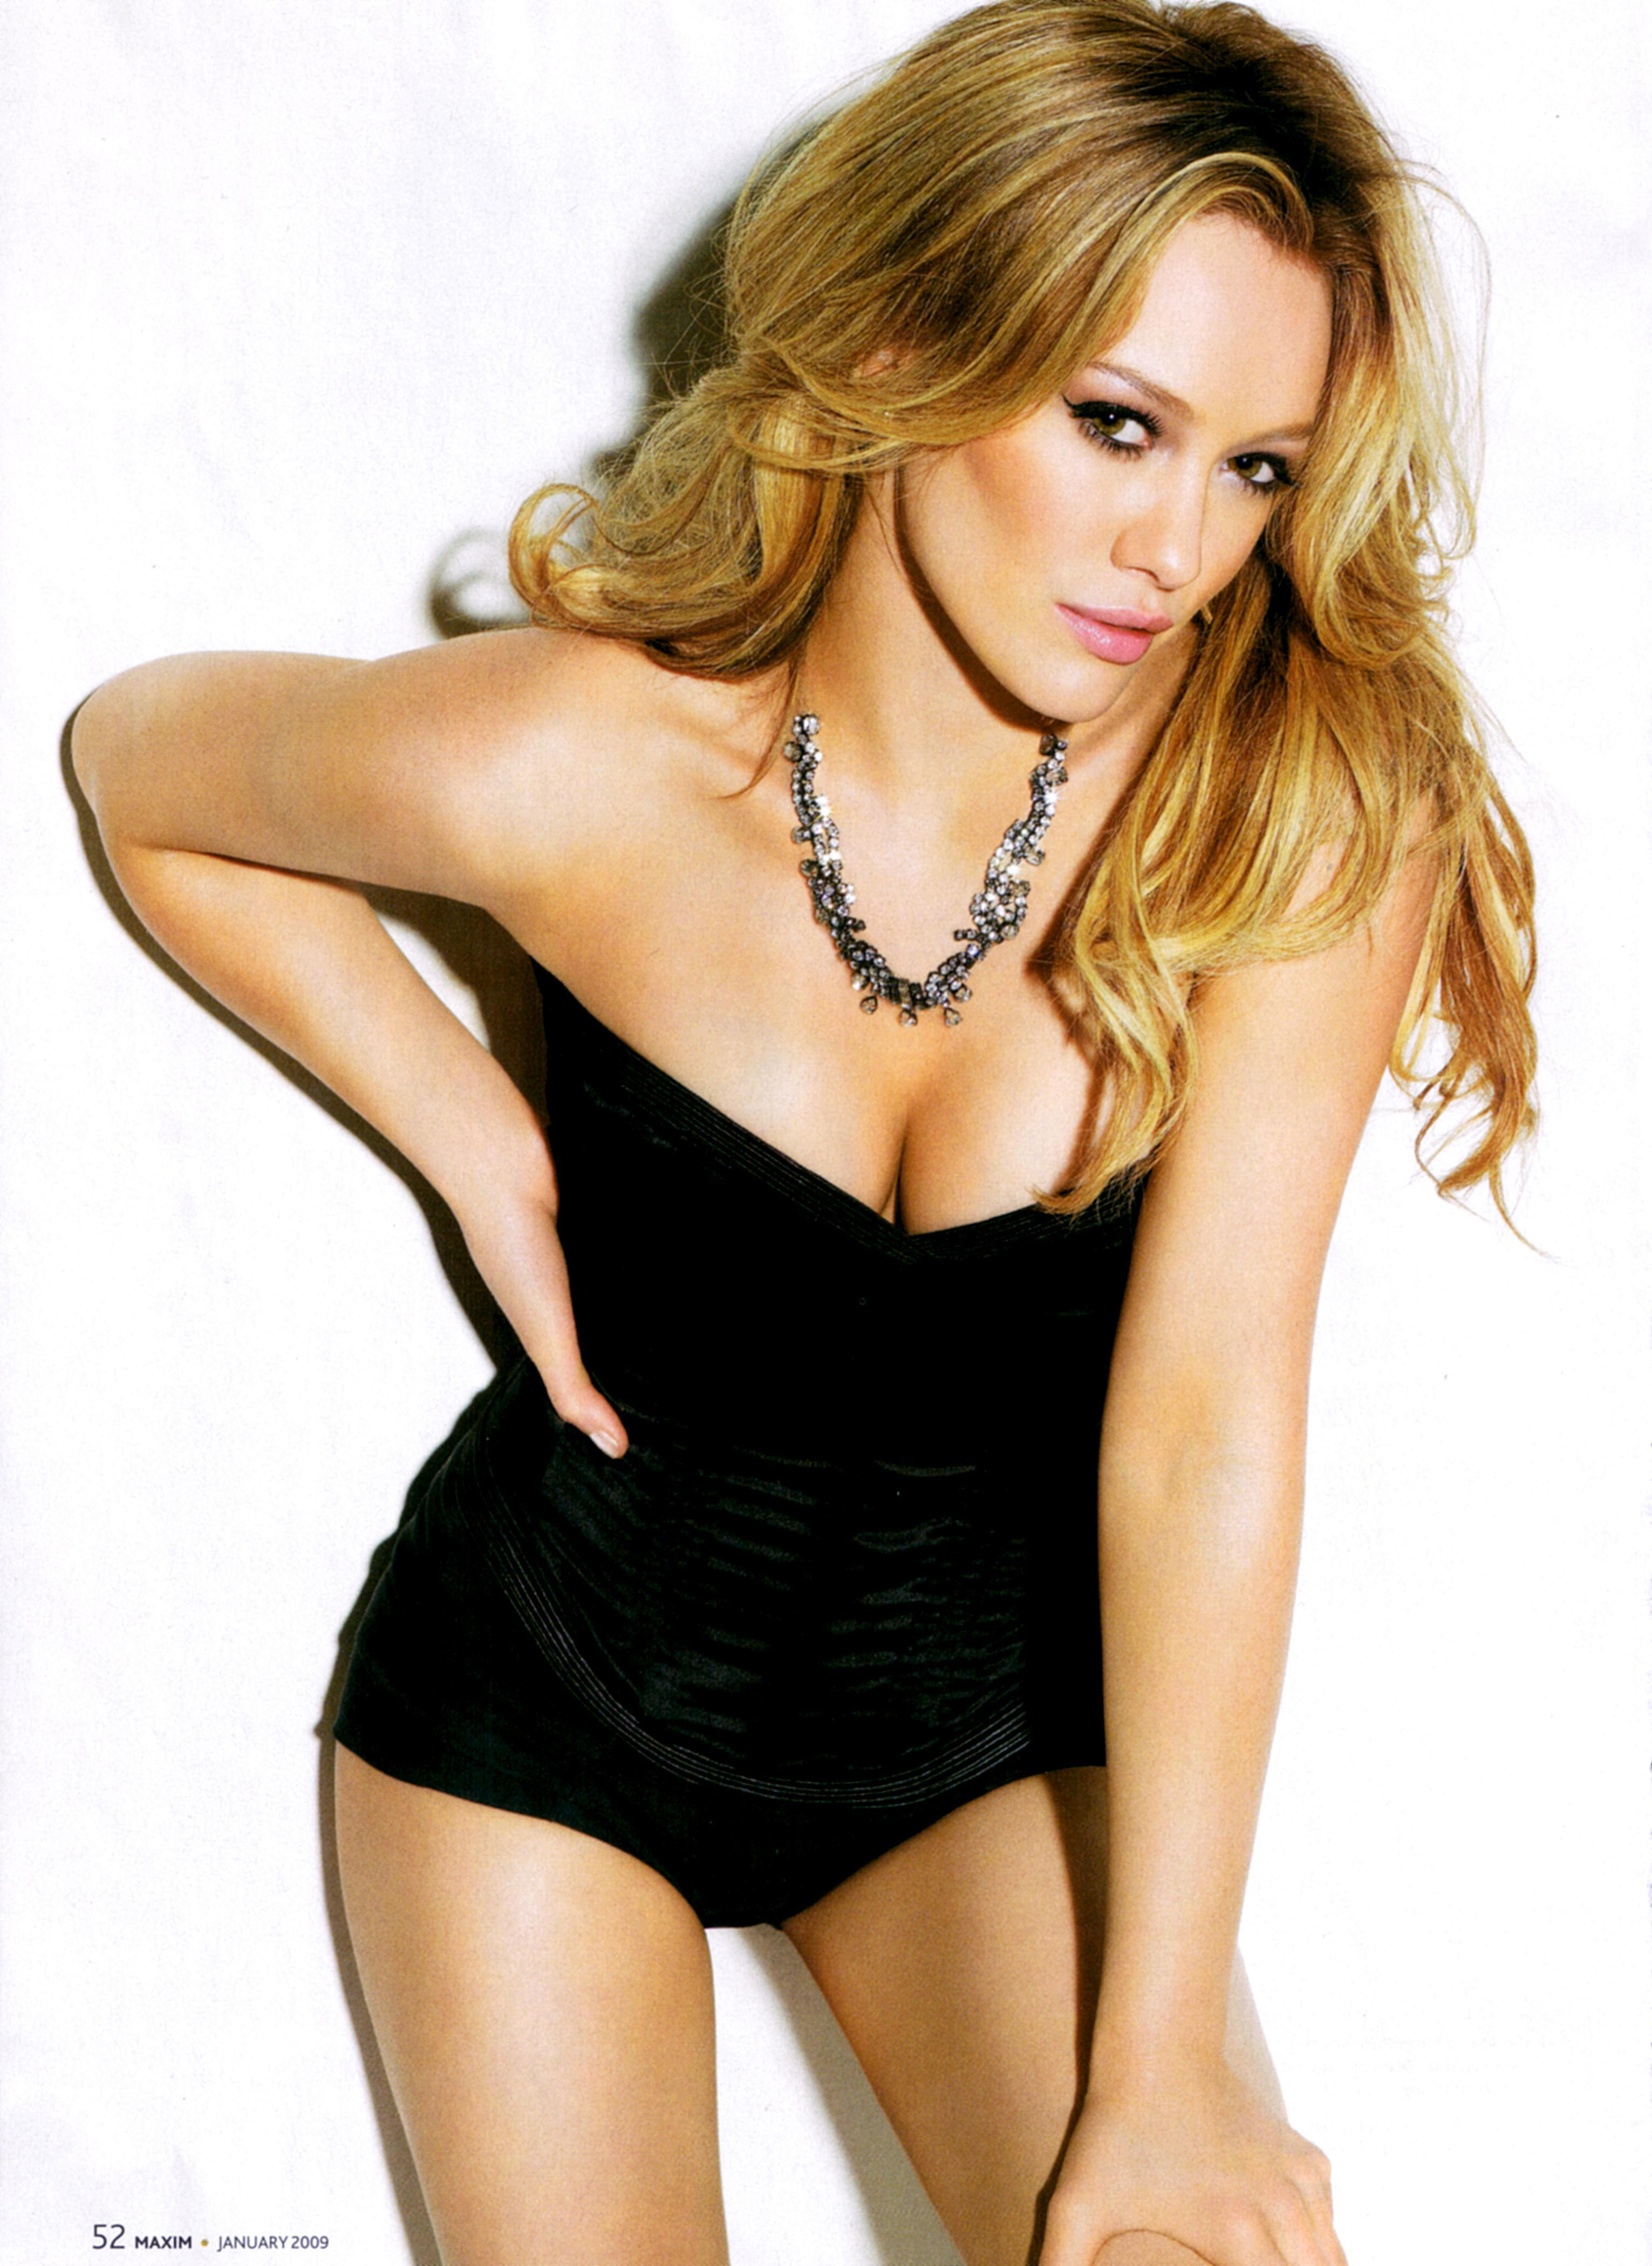 blondes Women hilary duff HD Wallpaper